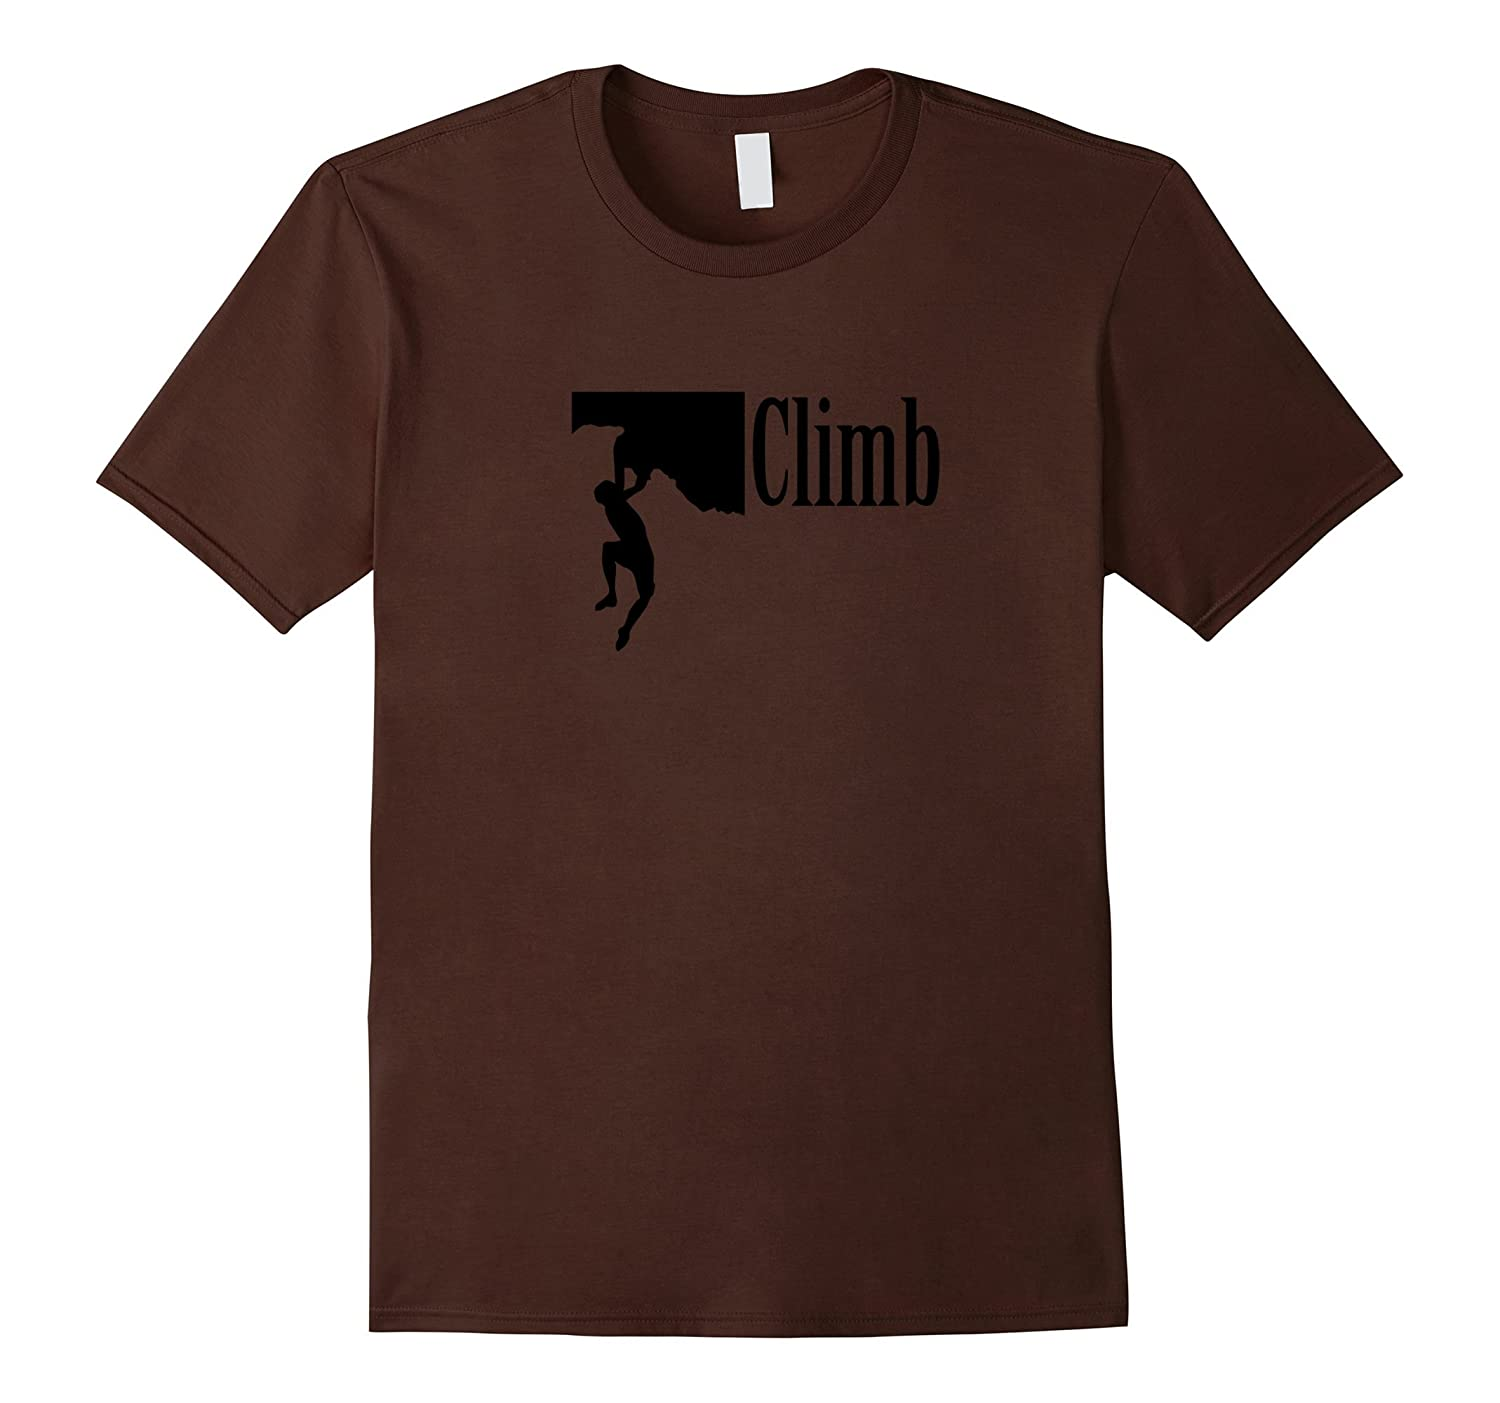 Rock Climbing T-Shirt Simple, Great Way to Honor Climbing-BN